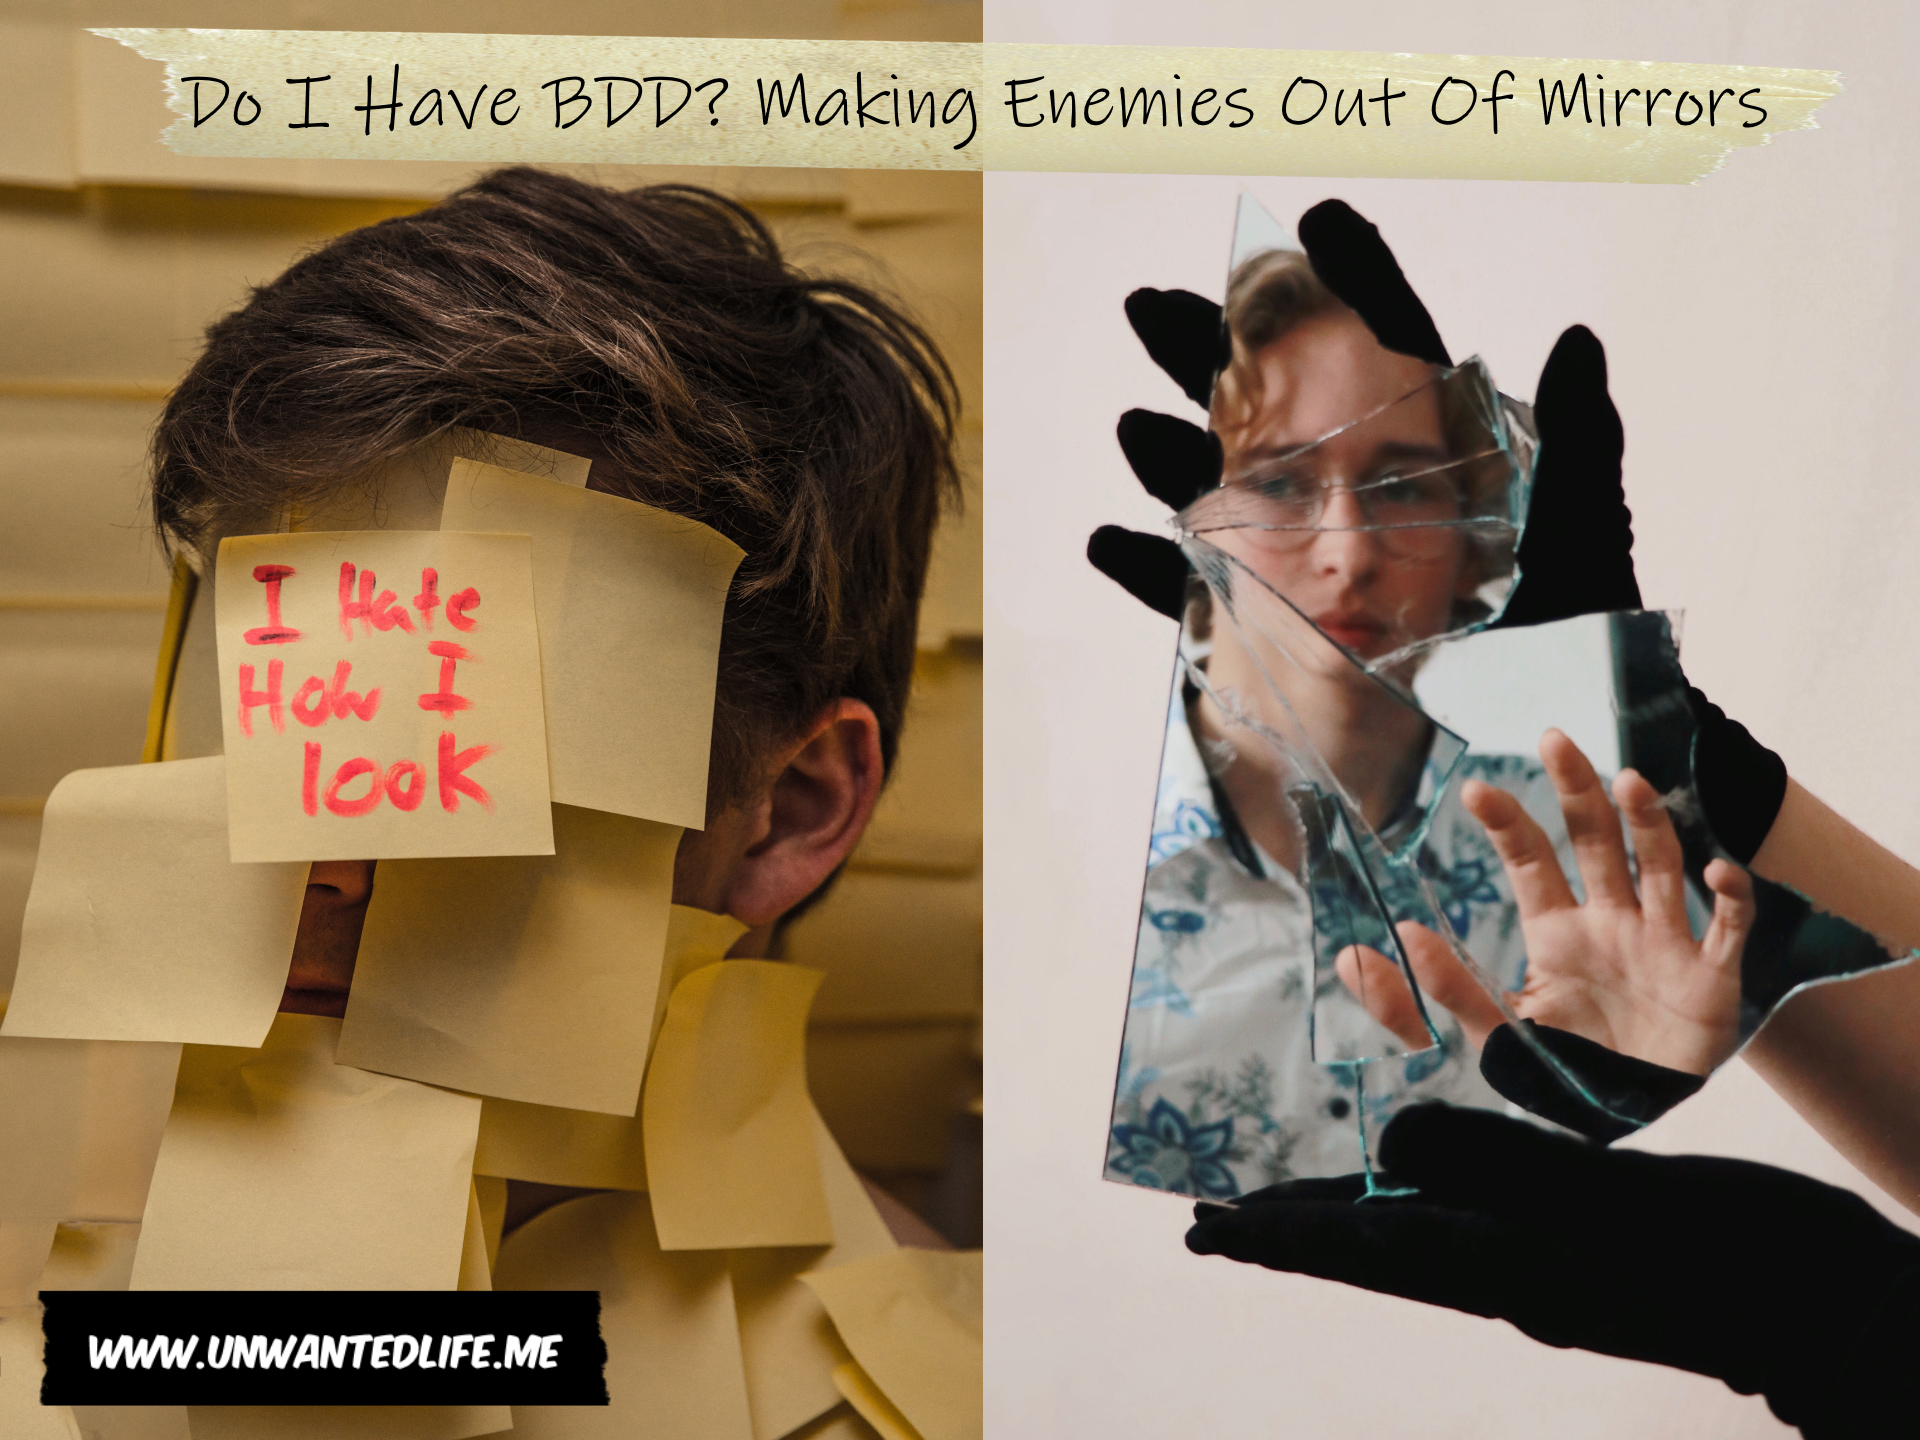 "The image is split in two down the middle, with the first image being of a white man covered in posit notes with one note saying ""I hate how I look"". The second image is of a white man being reflected back in broken mirror fragments. The article title - Do I Have BDD? Making Enemies Out Of Mirrors - is across the top of the image"